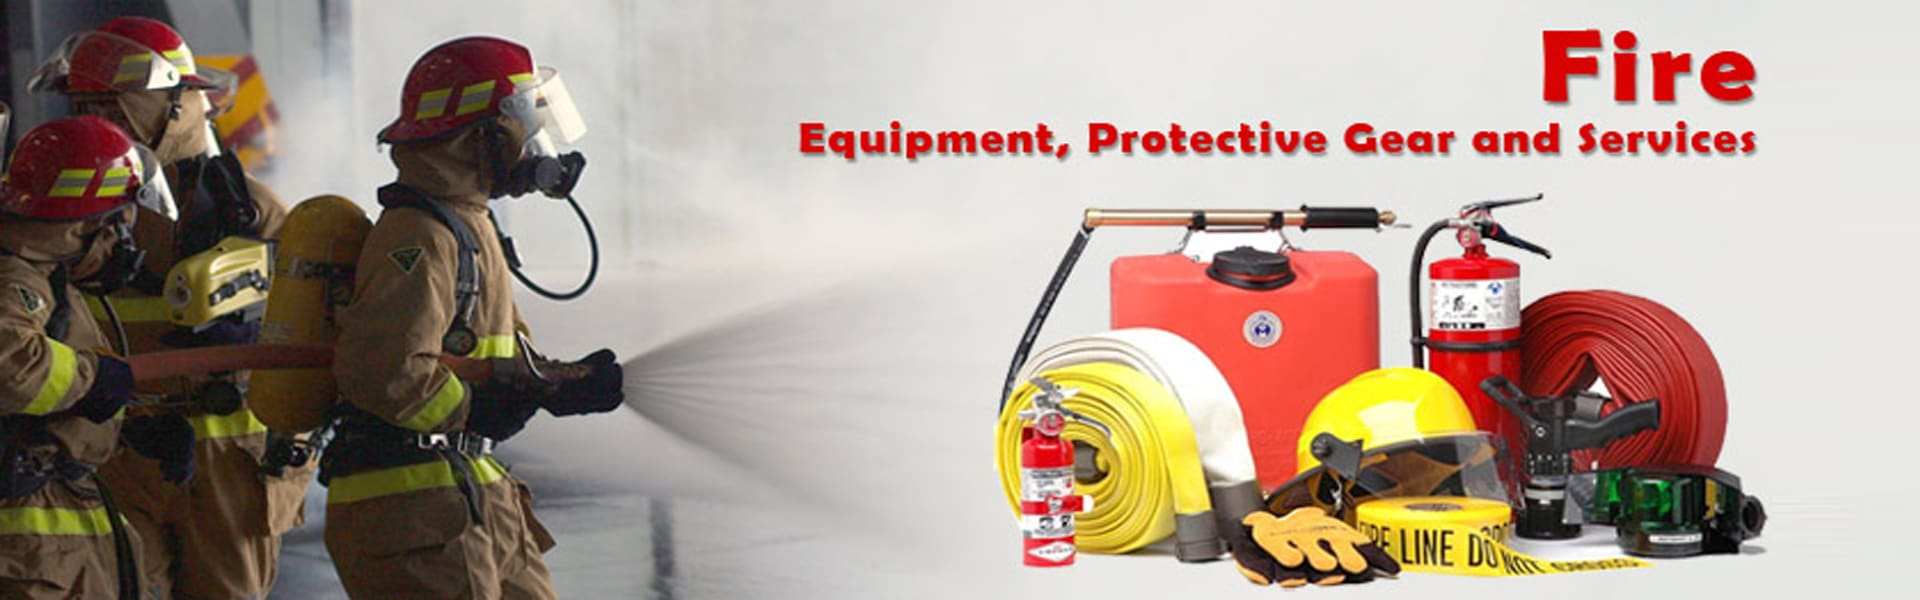 Fire Fighting Equipment Fire Protection Equipment Accessories